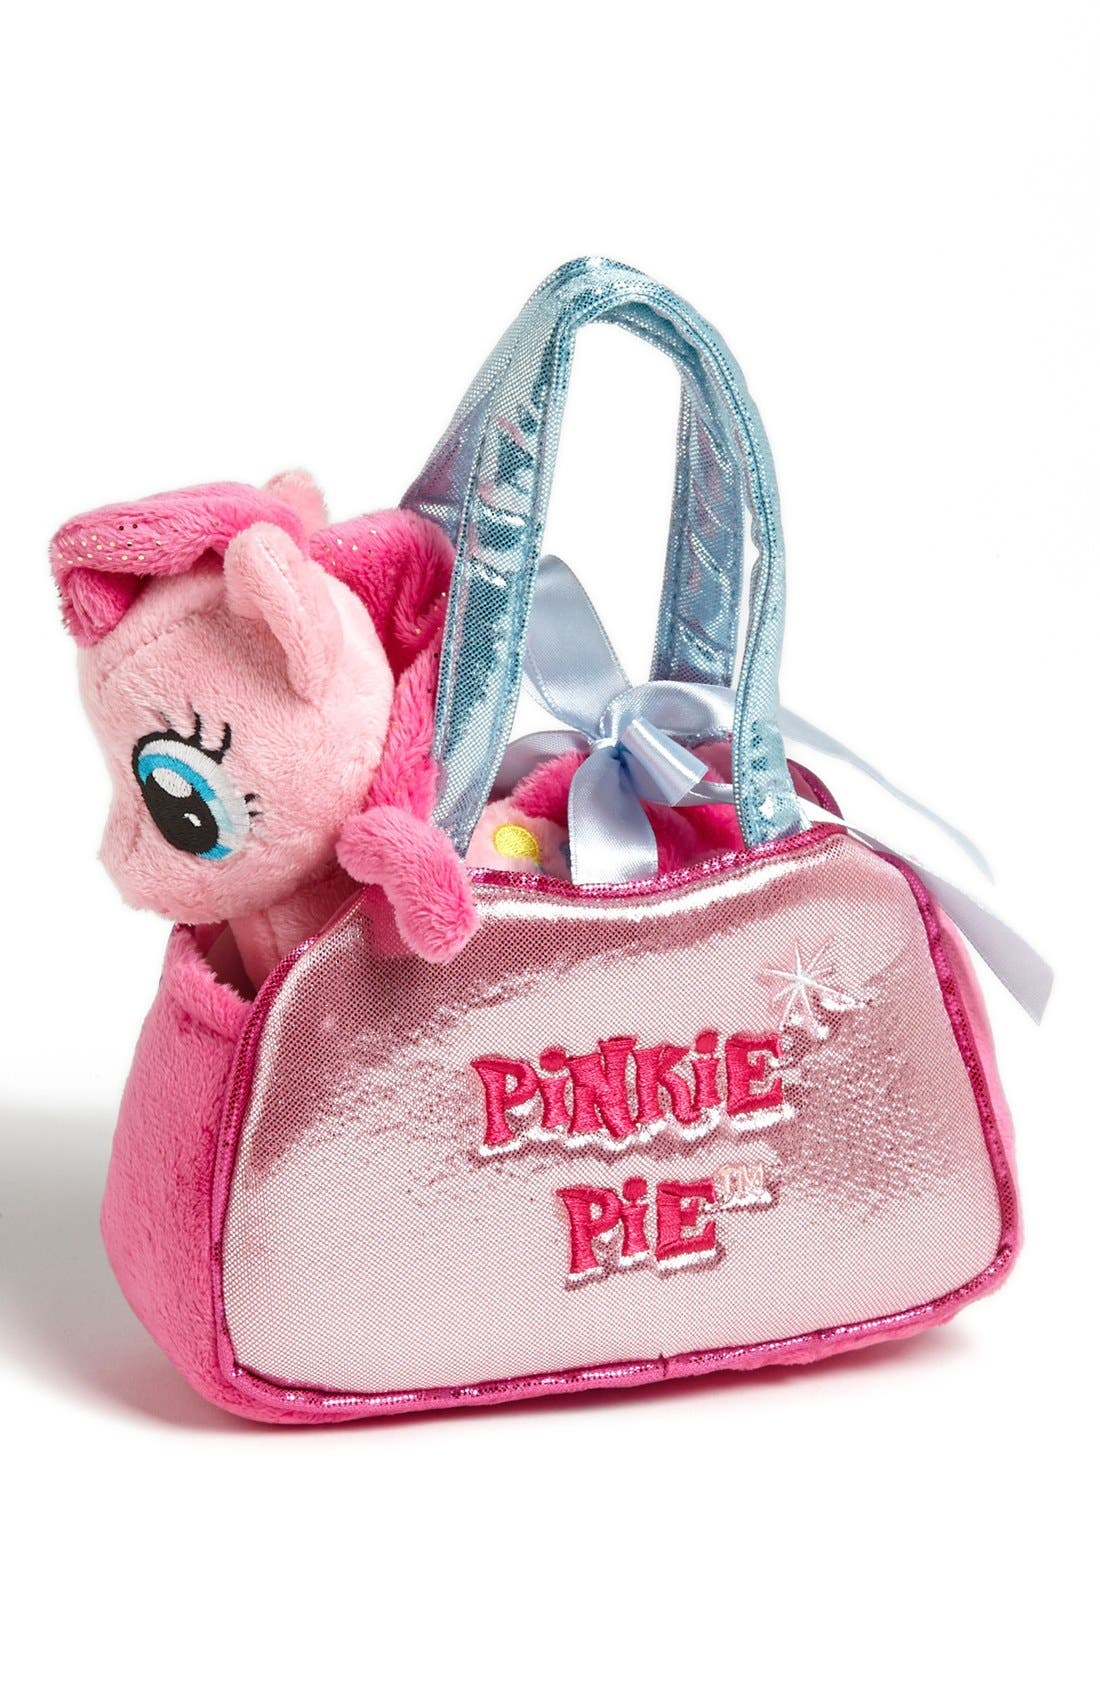 Alternate Image 1 Selected - Aurora World Toys 'My Little Pony® - Pinkie Pie®' Stuffed Pony & Purse